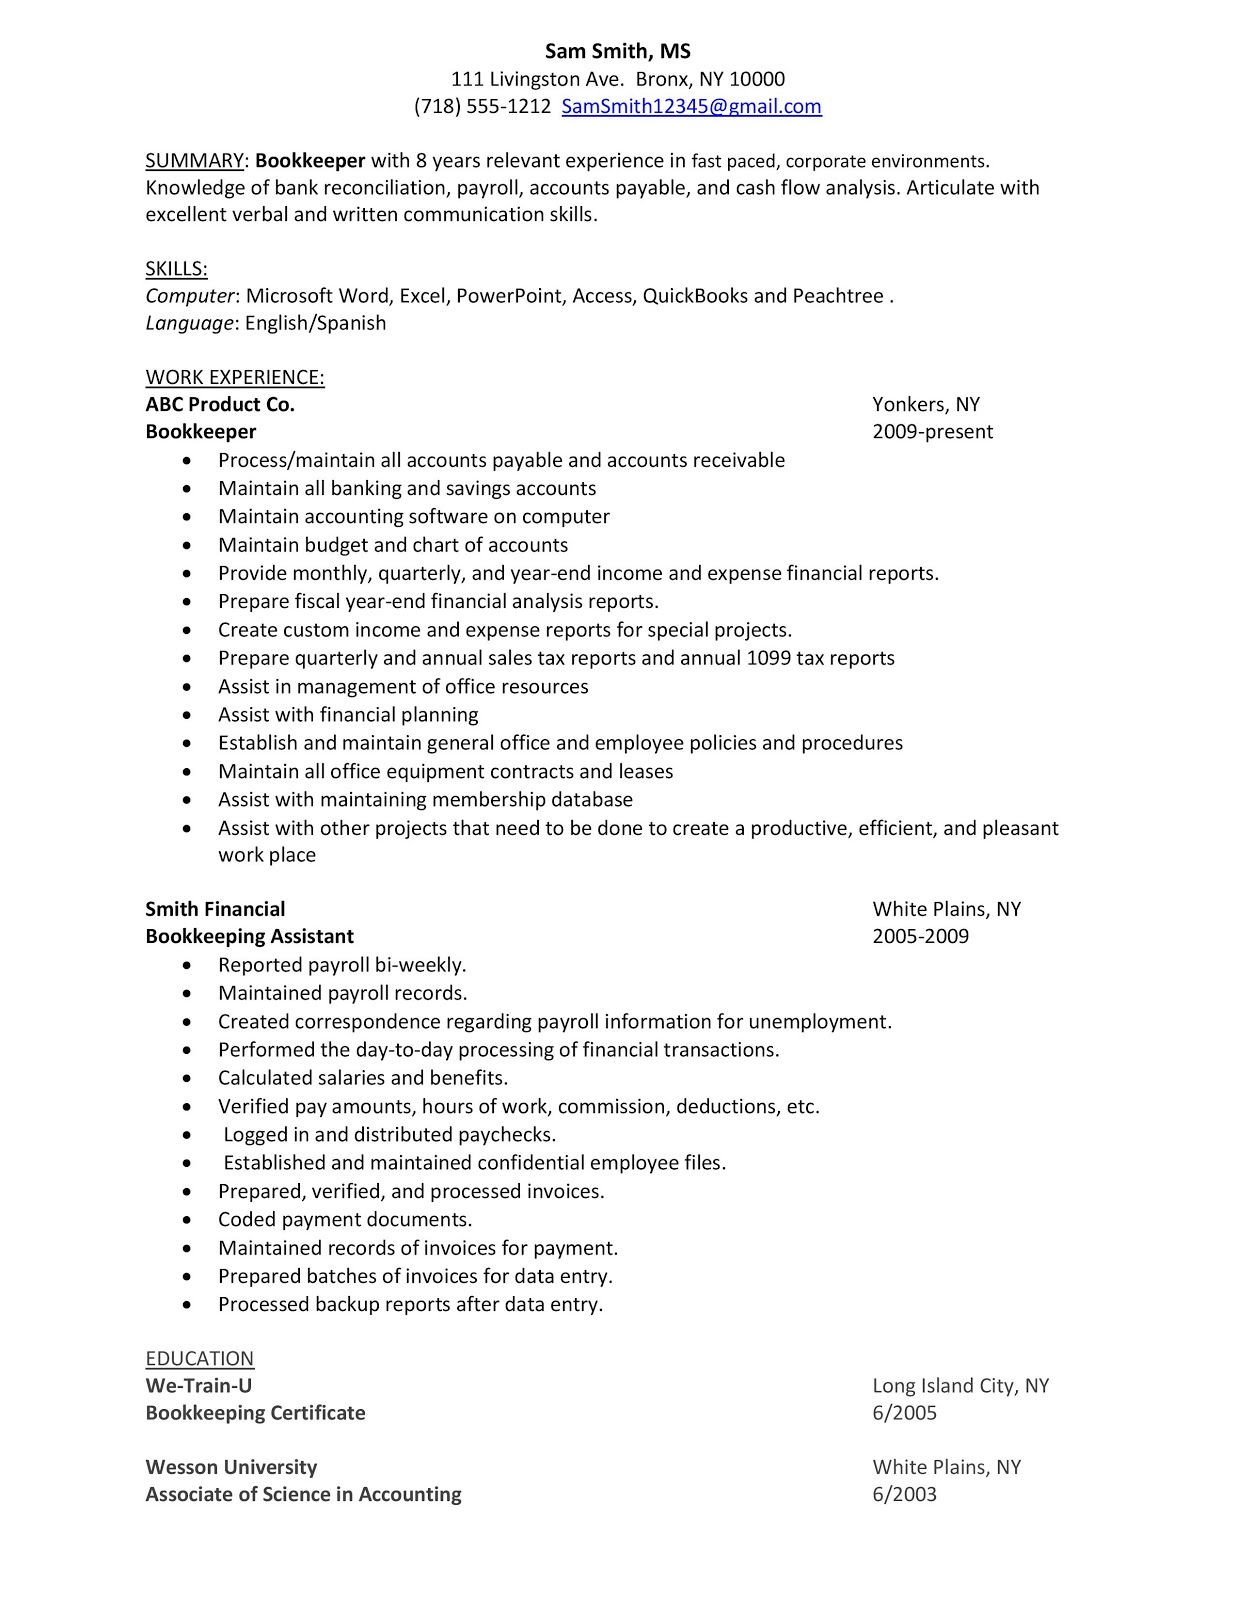 medical device sales representative resume examples sample sle job corporate pilot resume template cipanewsletter medical records